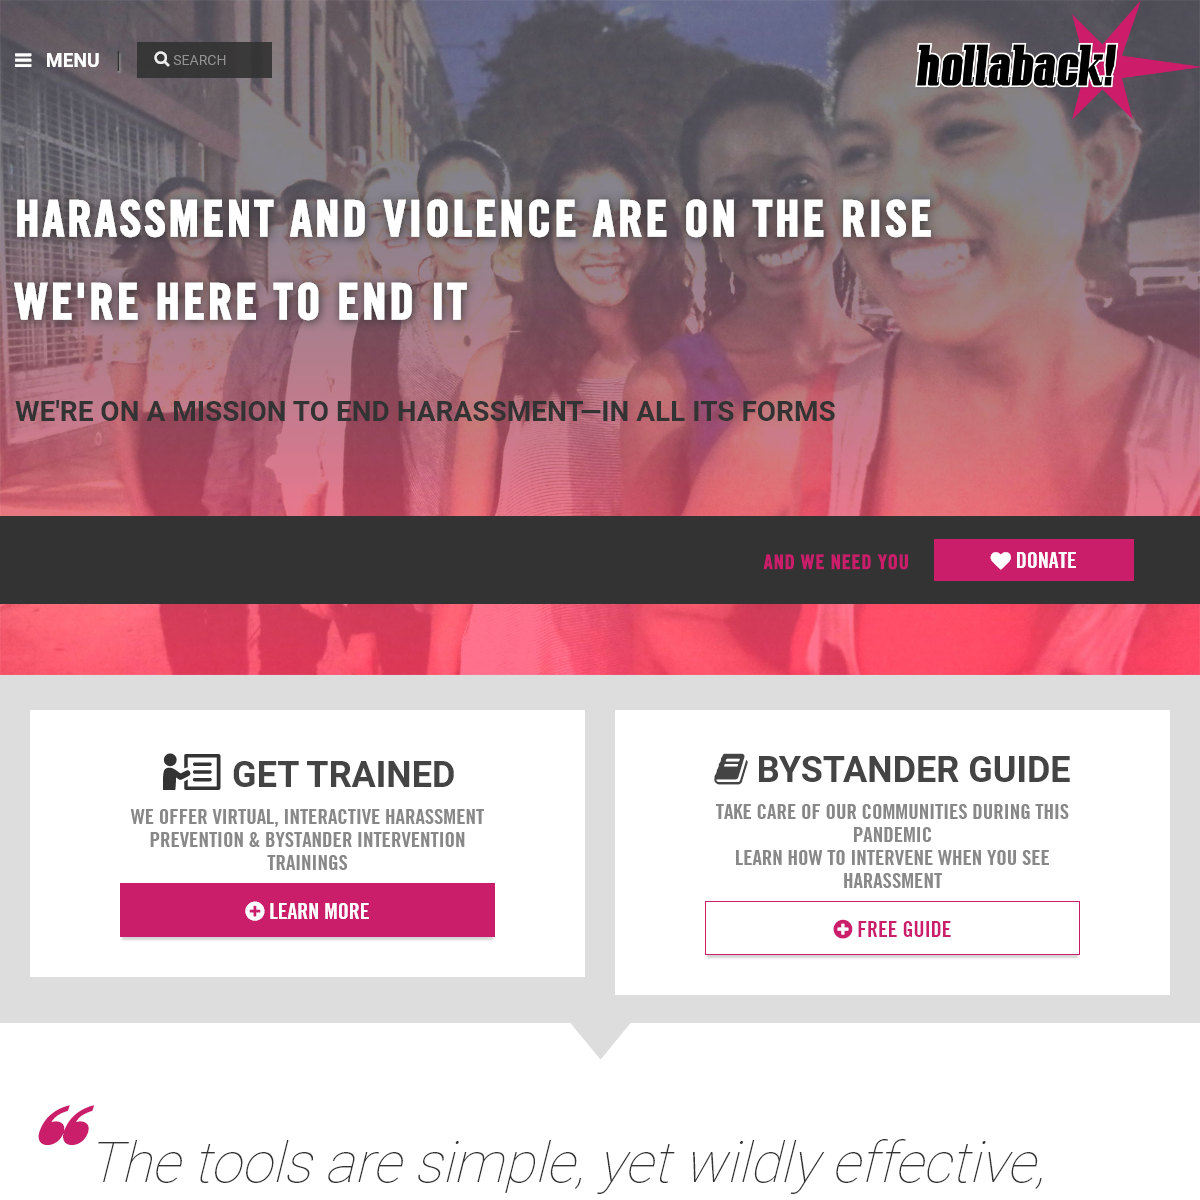 Hollaback! Together We Have the Power to End Harassment